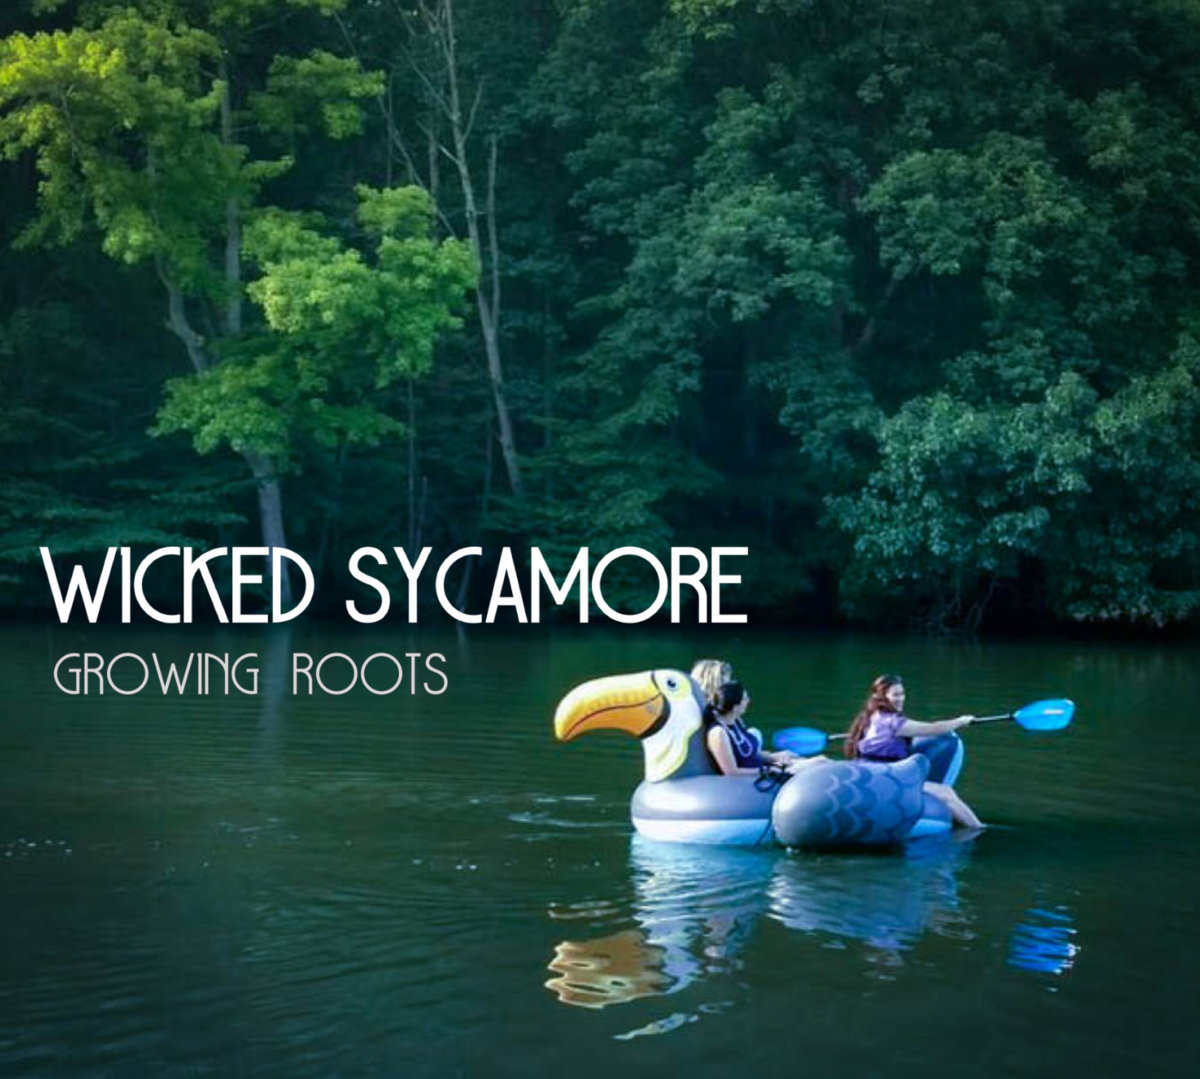 Wicked Sycamore - Growing Roots